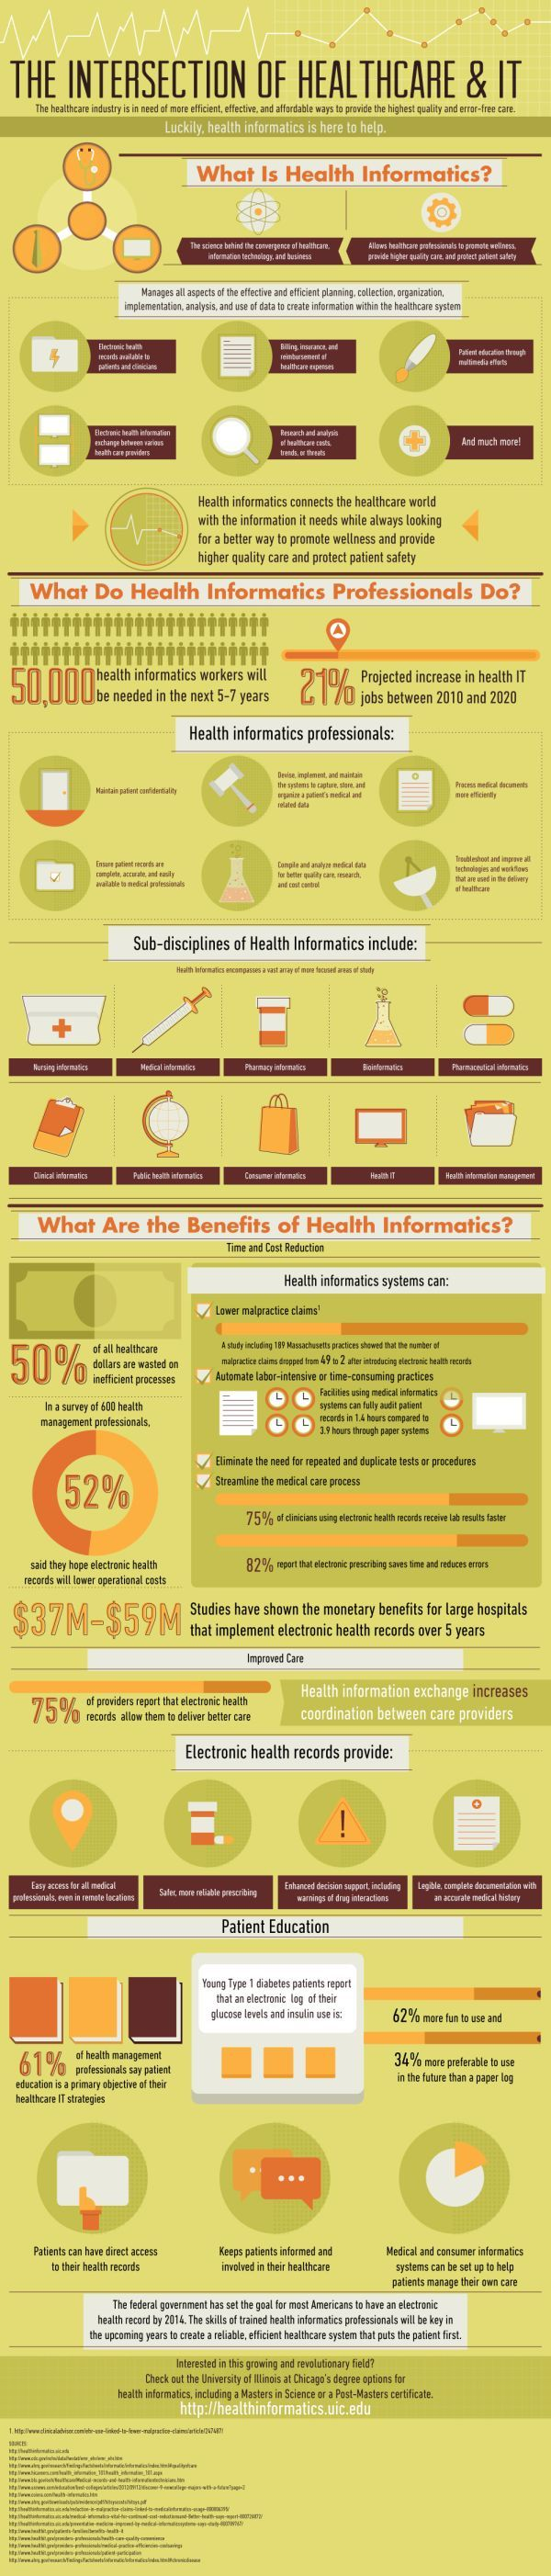 informatics in public health information technology essay Health information technology (hit) is information technology applied to health  and health care  health informatics refers to the intersection of information  science, computer science, and health care health informatics describes the use  and.